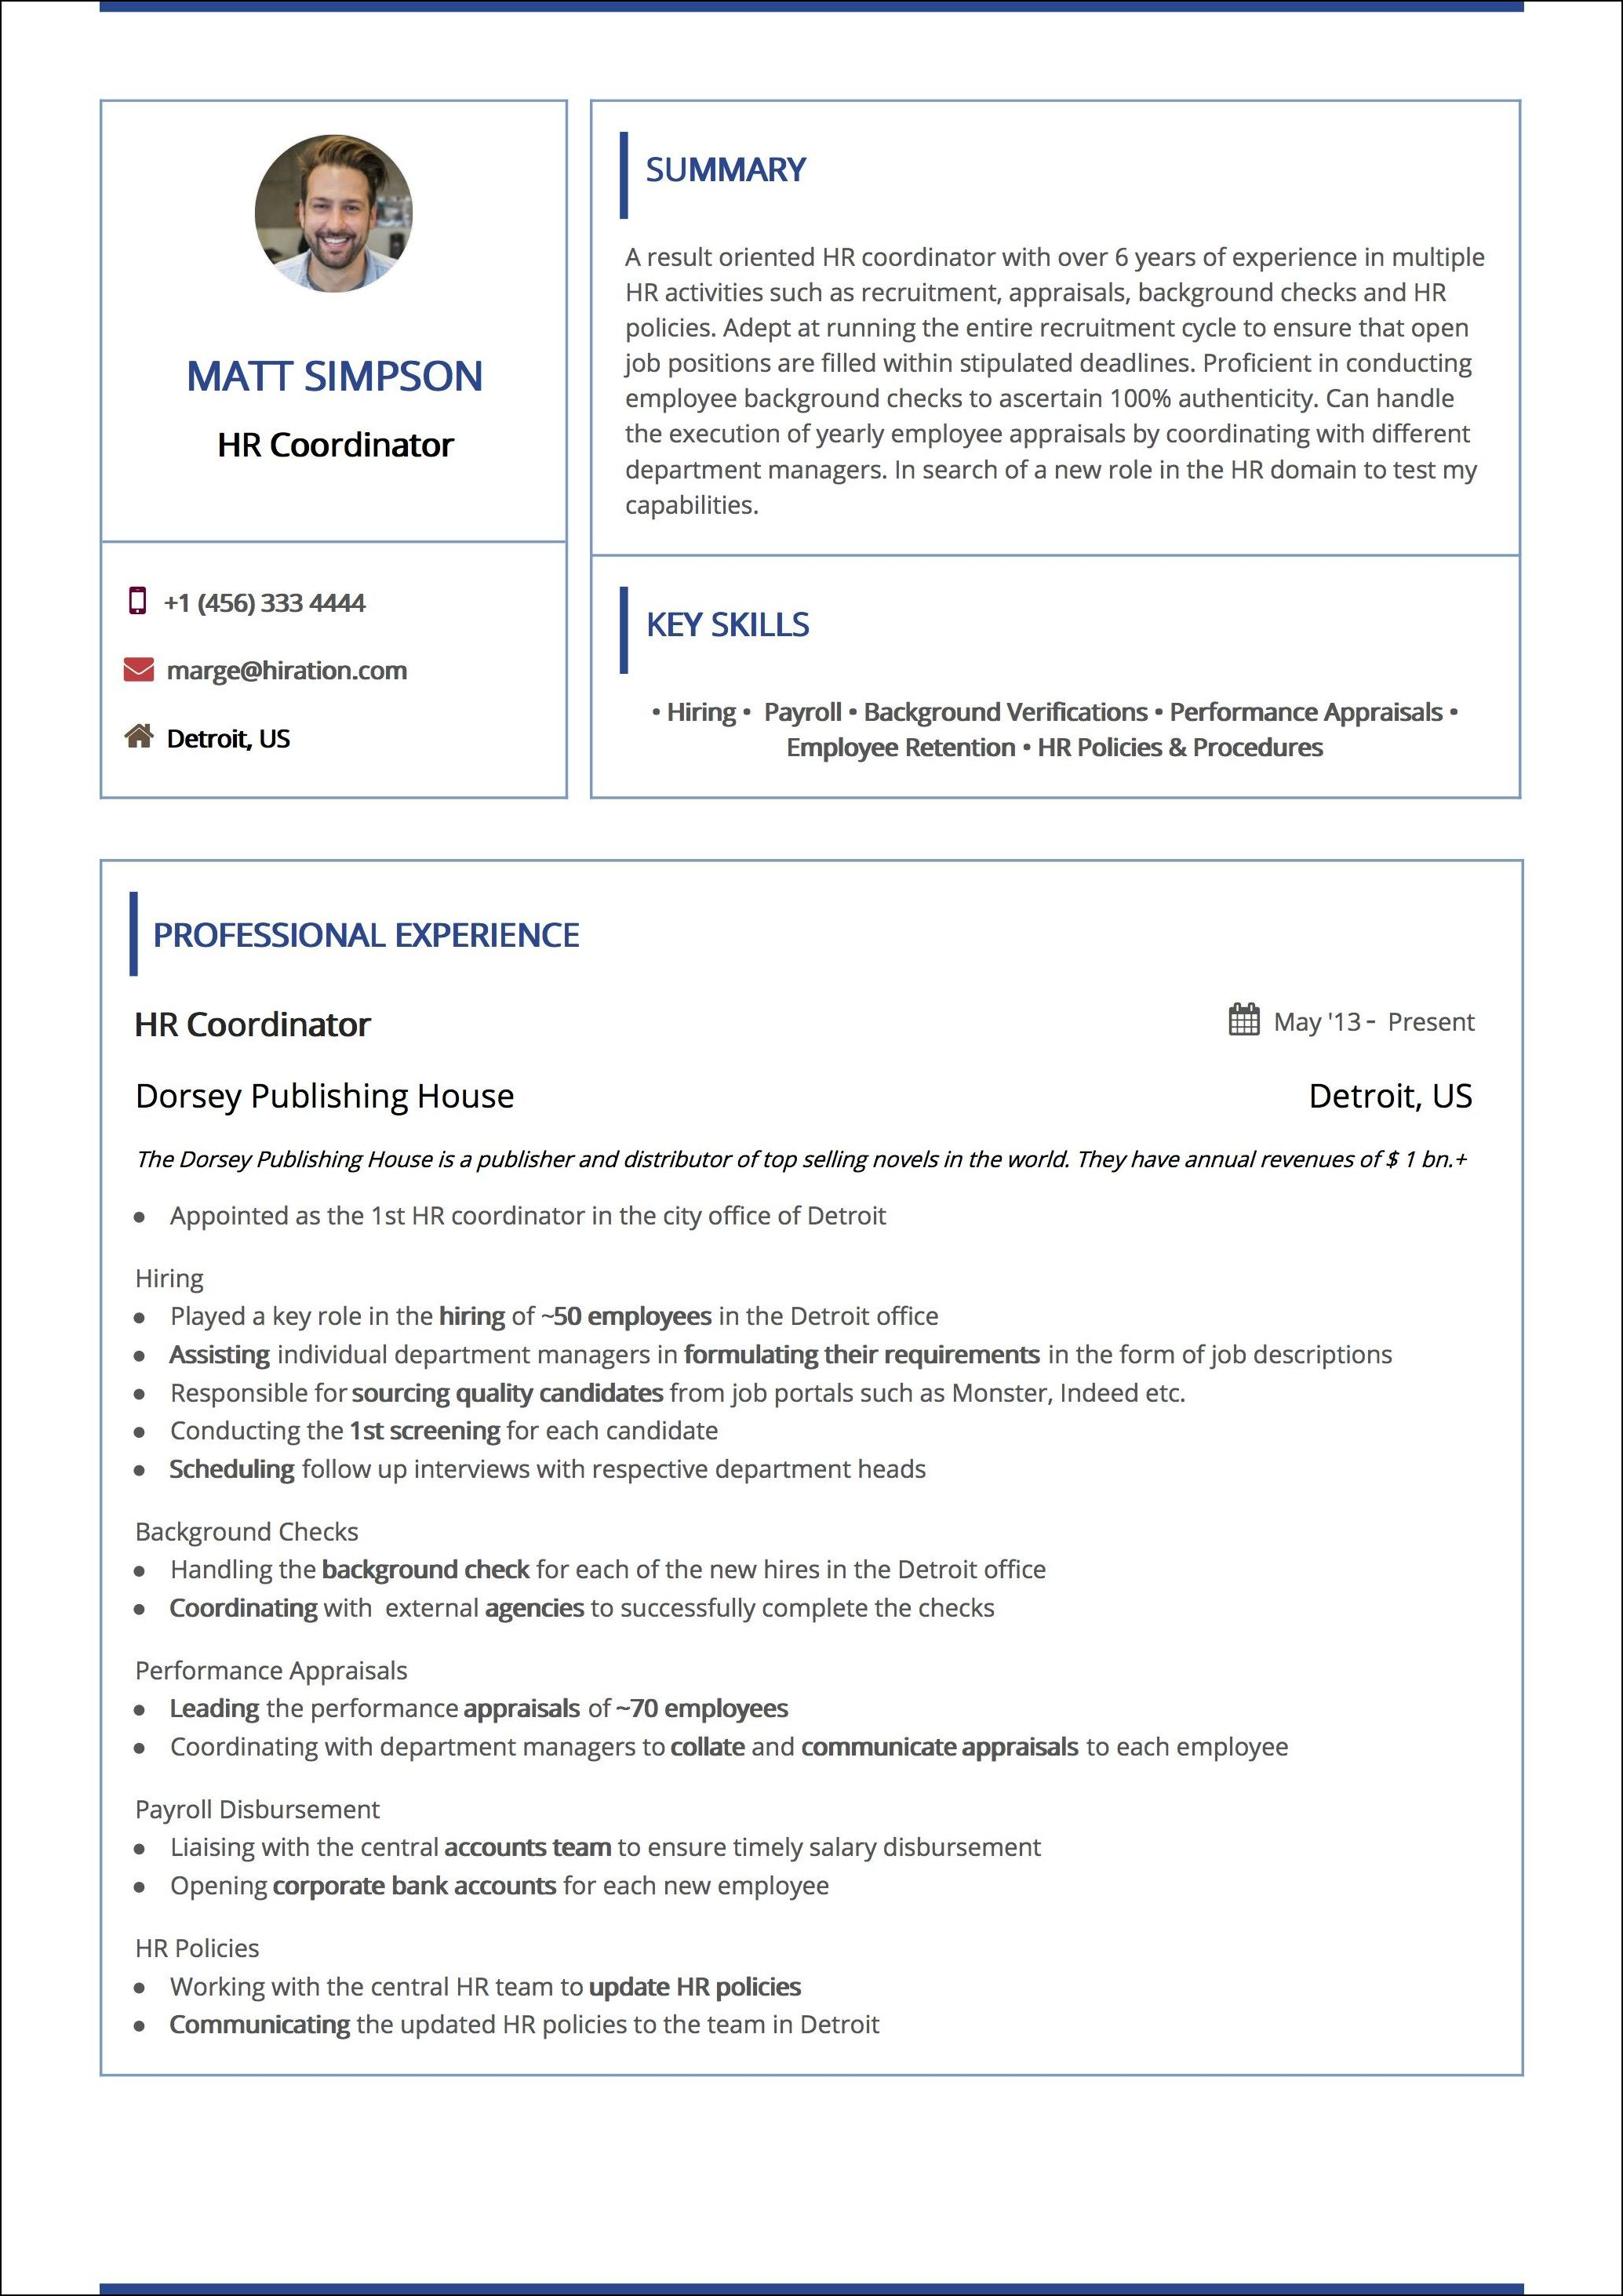 resume templates the 2018 guide to choosing the best resume template